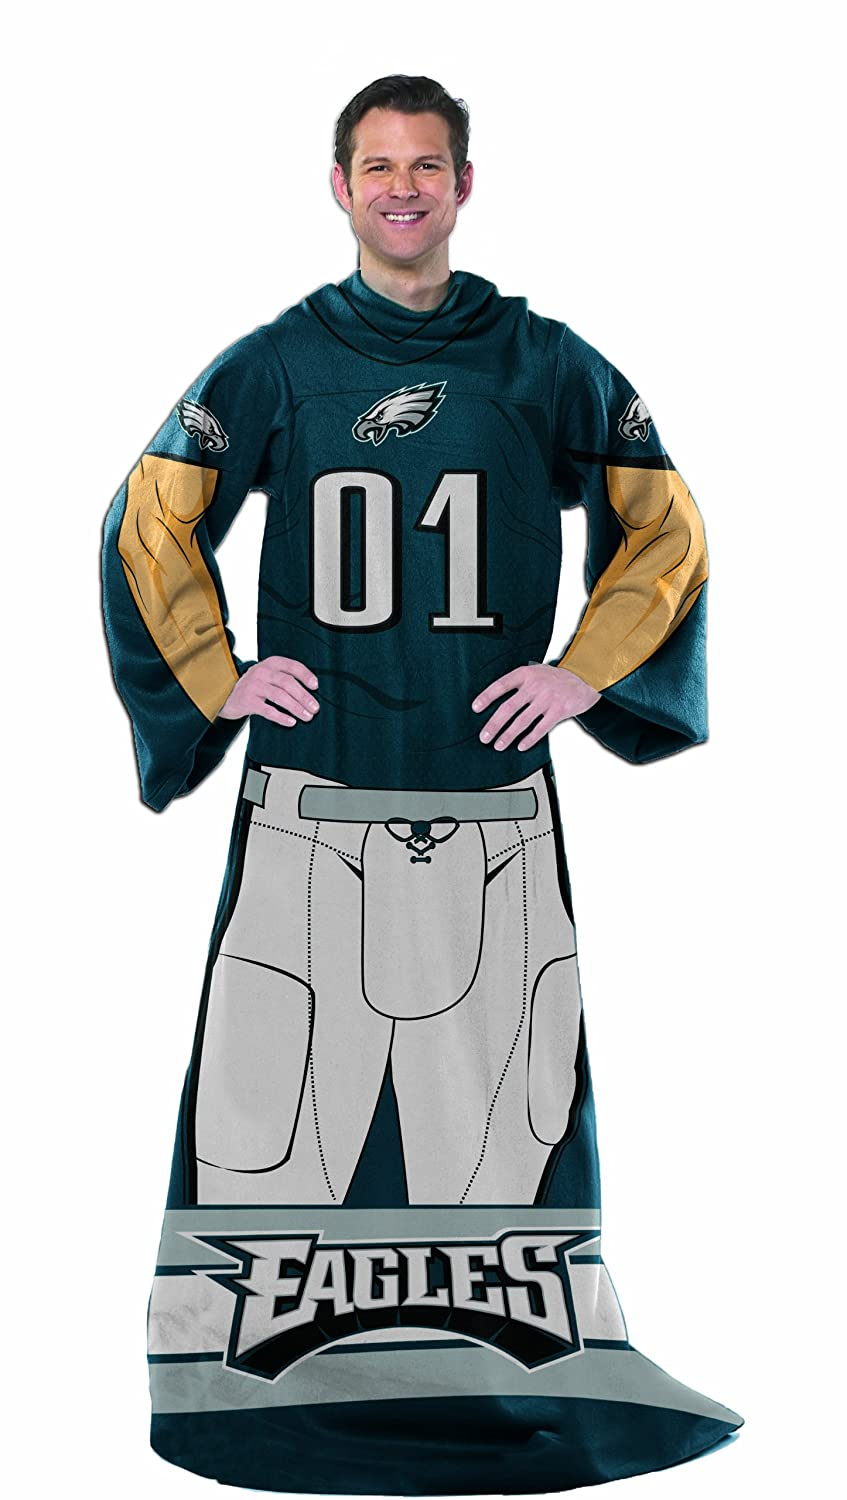 """Officially Licensed NFL Full Body Player Adult Comfy Throw Blanket, 48"""" x 71"""", Multi Color"""